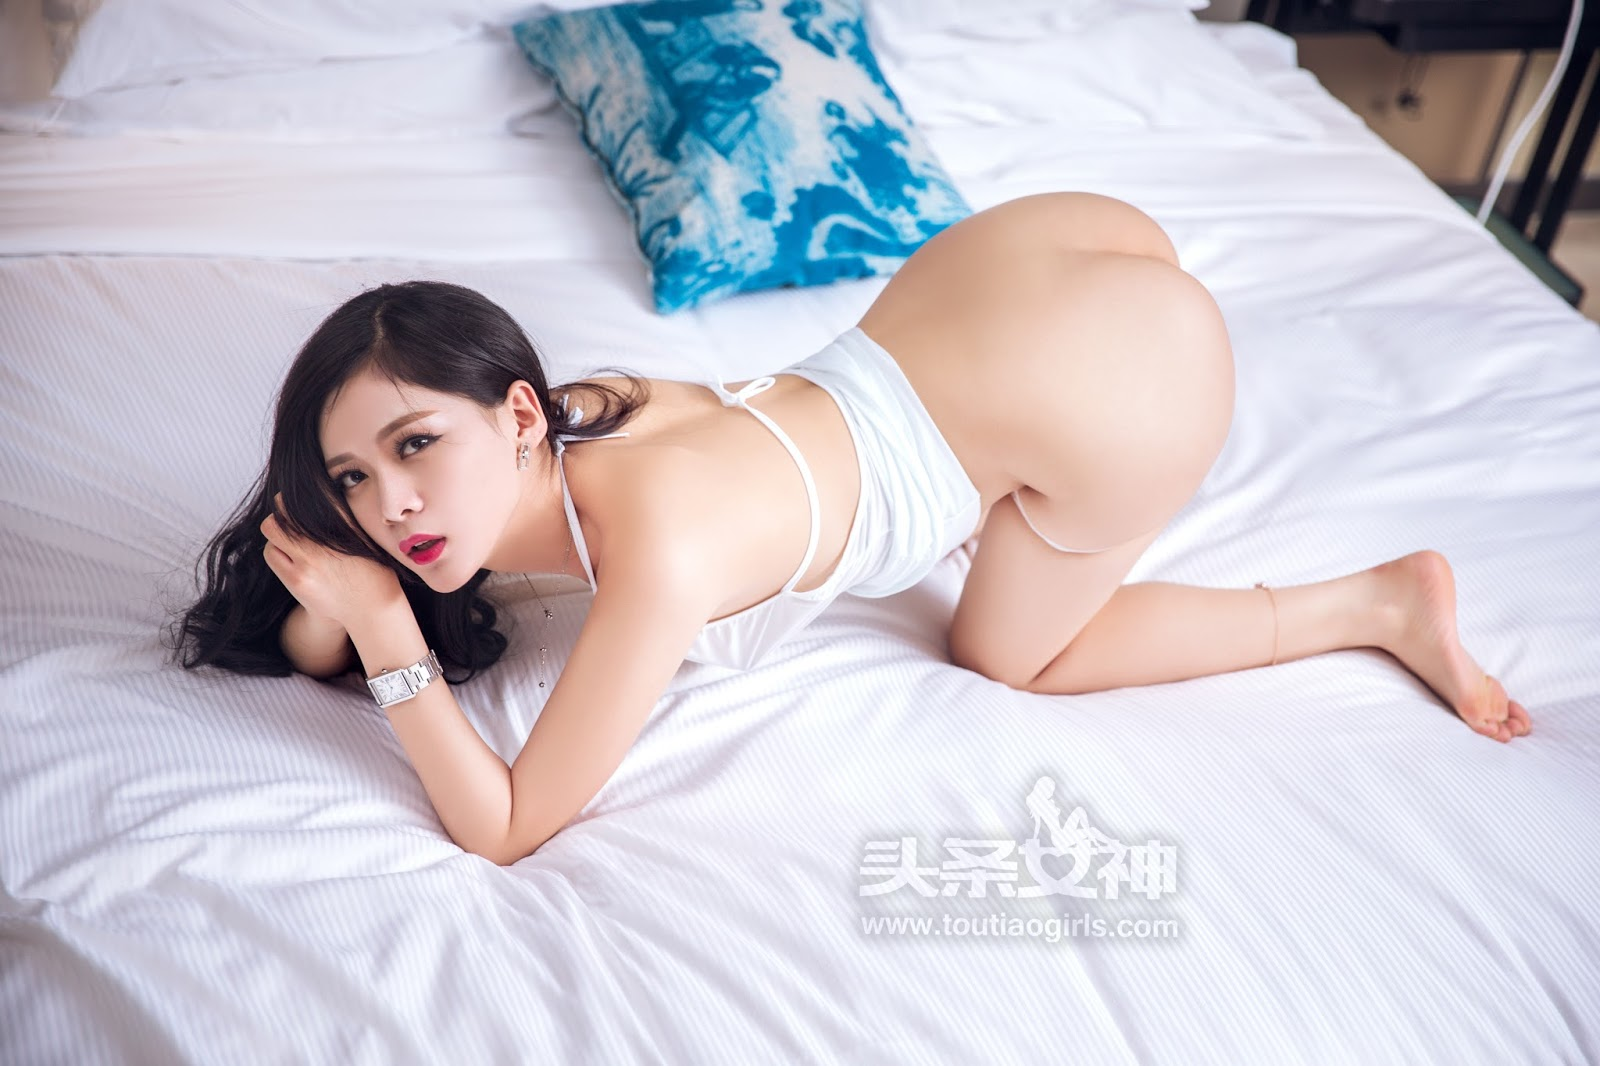 TouTiao 2017-07-19 Jin Sheng Xue (34 pics) 金圣雪 TouTiao pictures Jin Sheng Xue gravure chinesse girl china